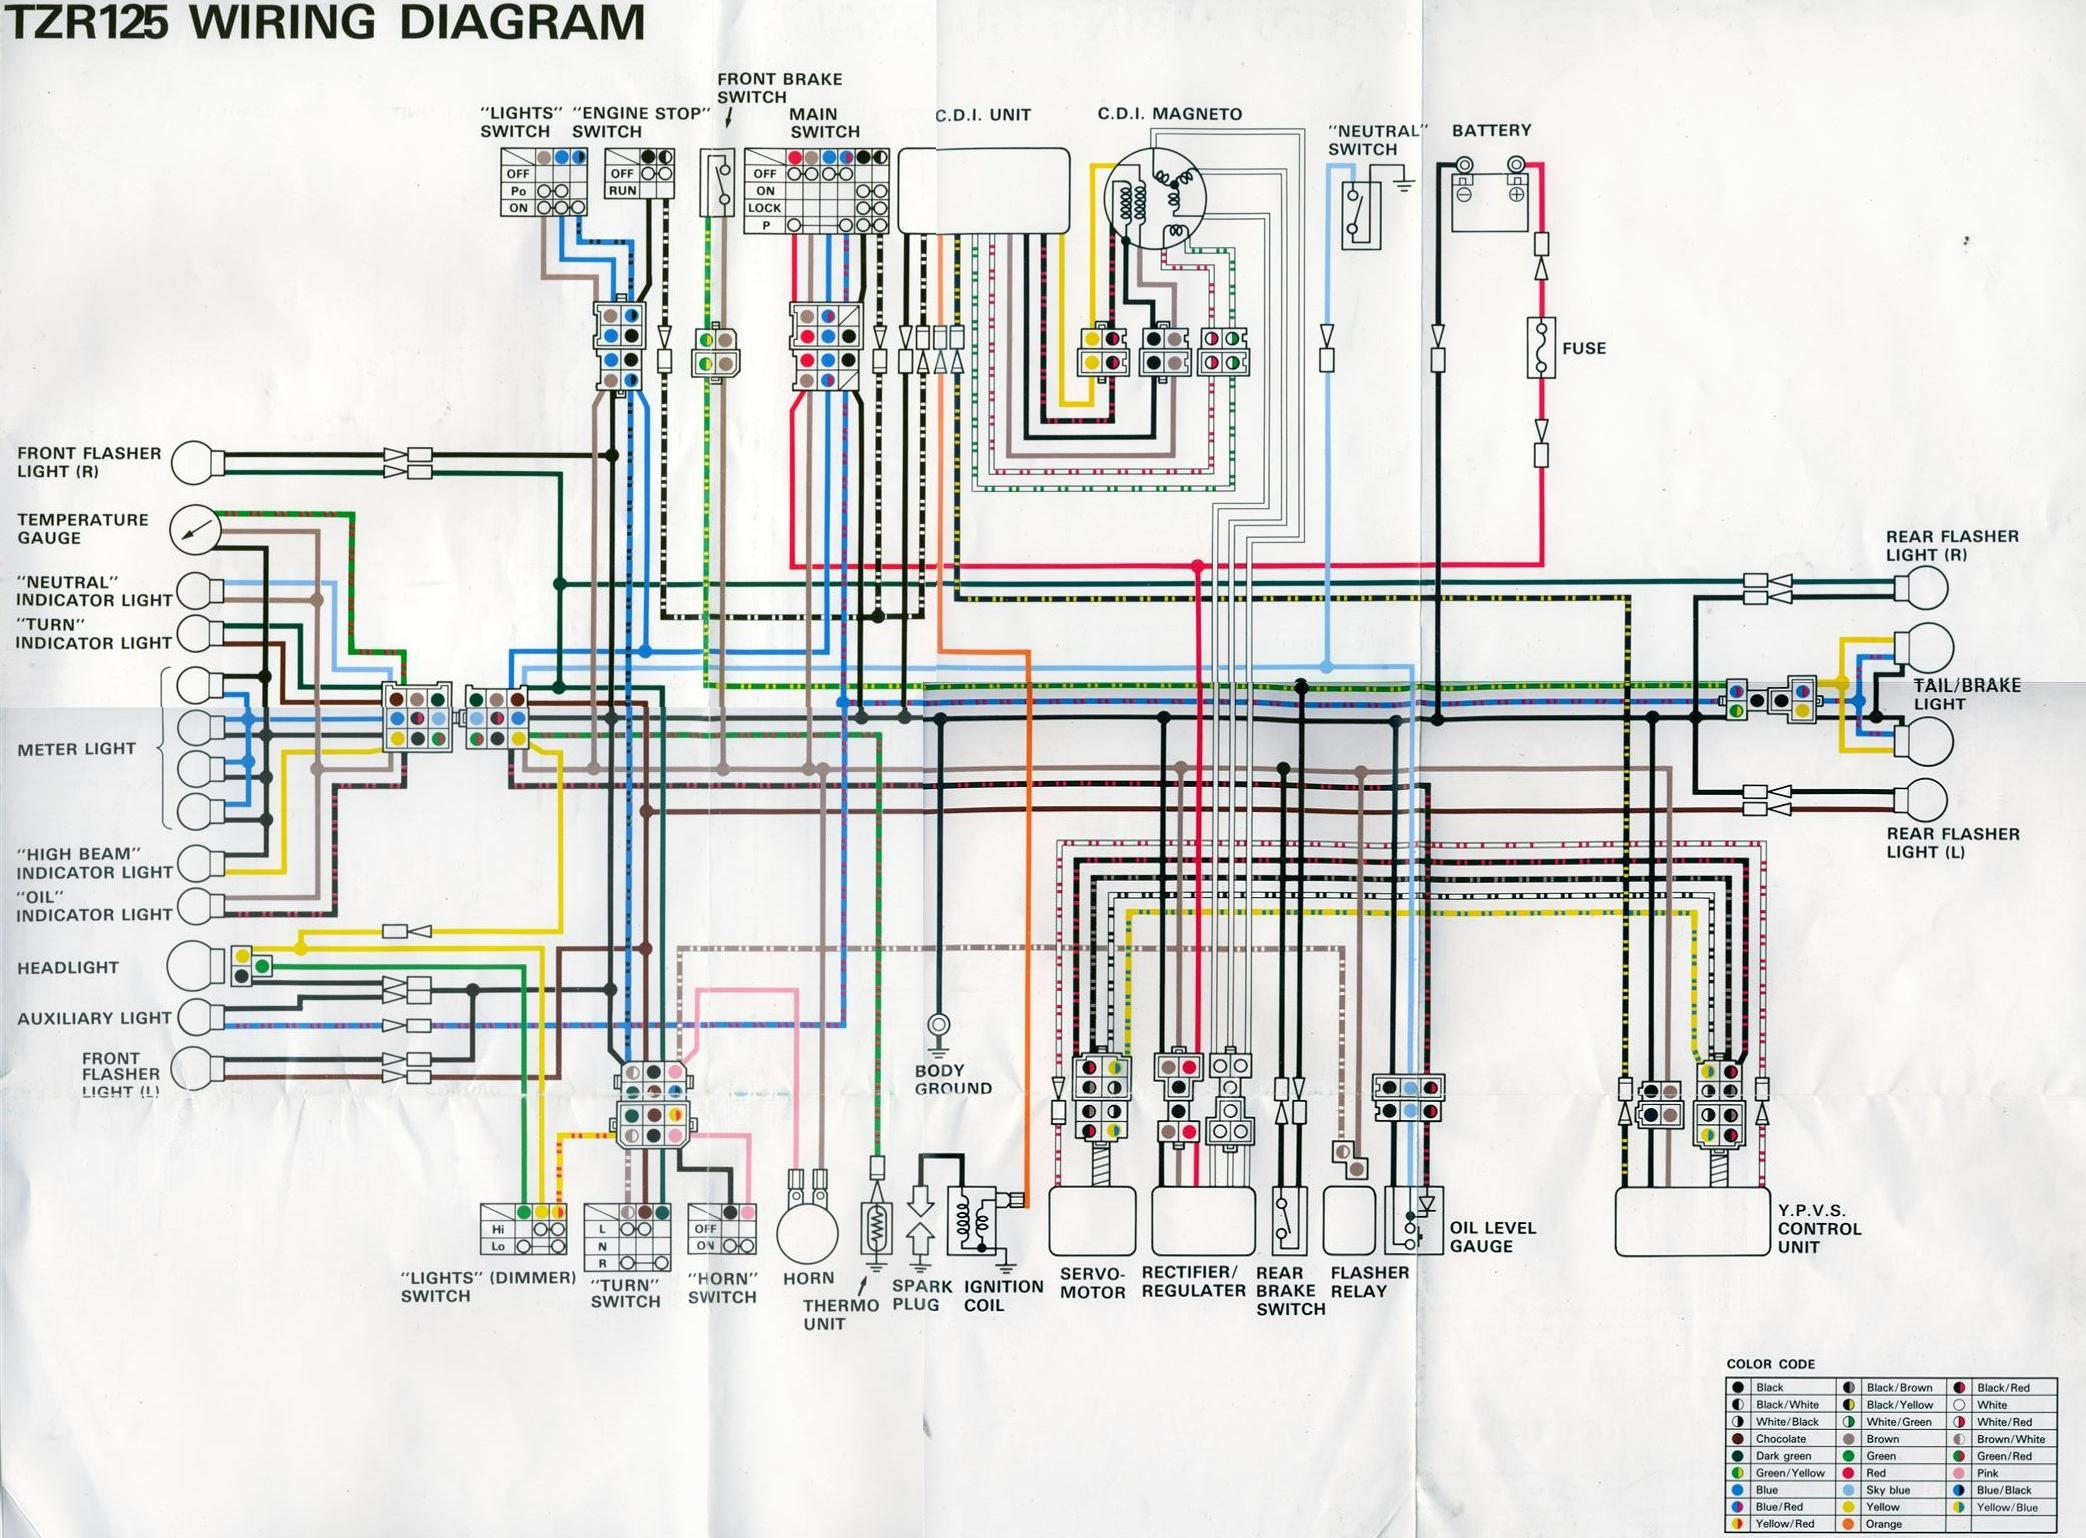 125cc Chinese Atv Wiring Diagram Diagrams Tao 110cc Engine Taotao 50cc Scooter Electric Motorcycle Loncin 250 6 Wire